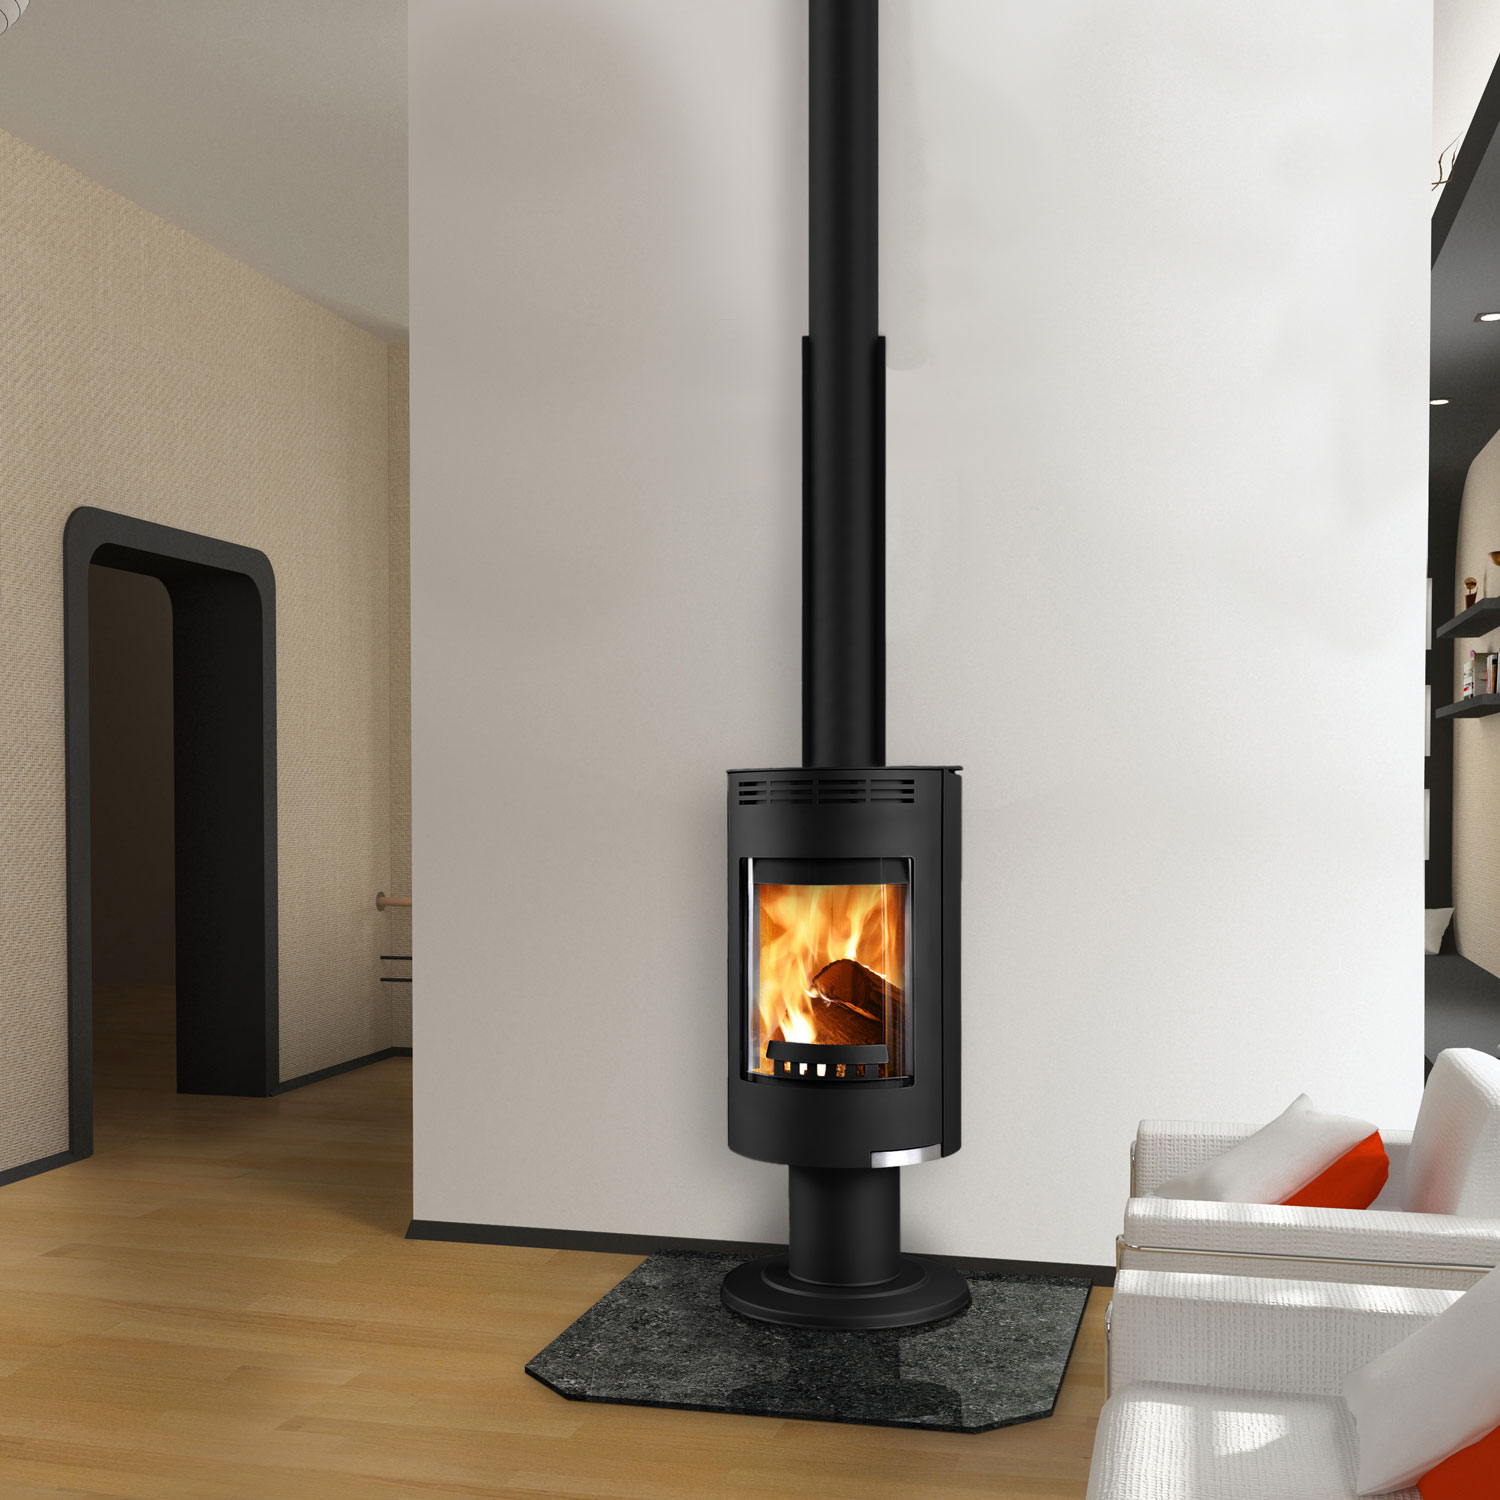 Euro Andorra Exclusive black freestanding wood heater with long flue in living room